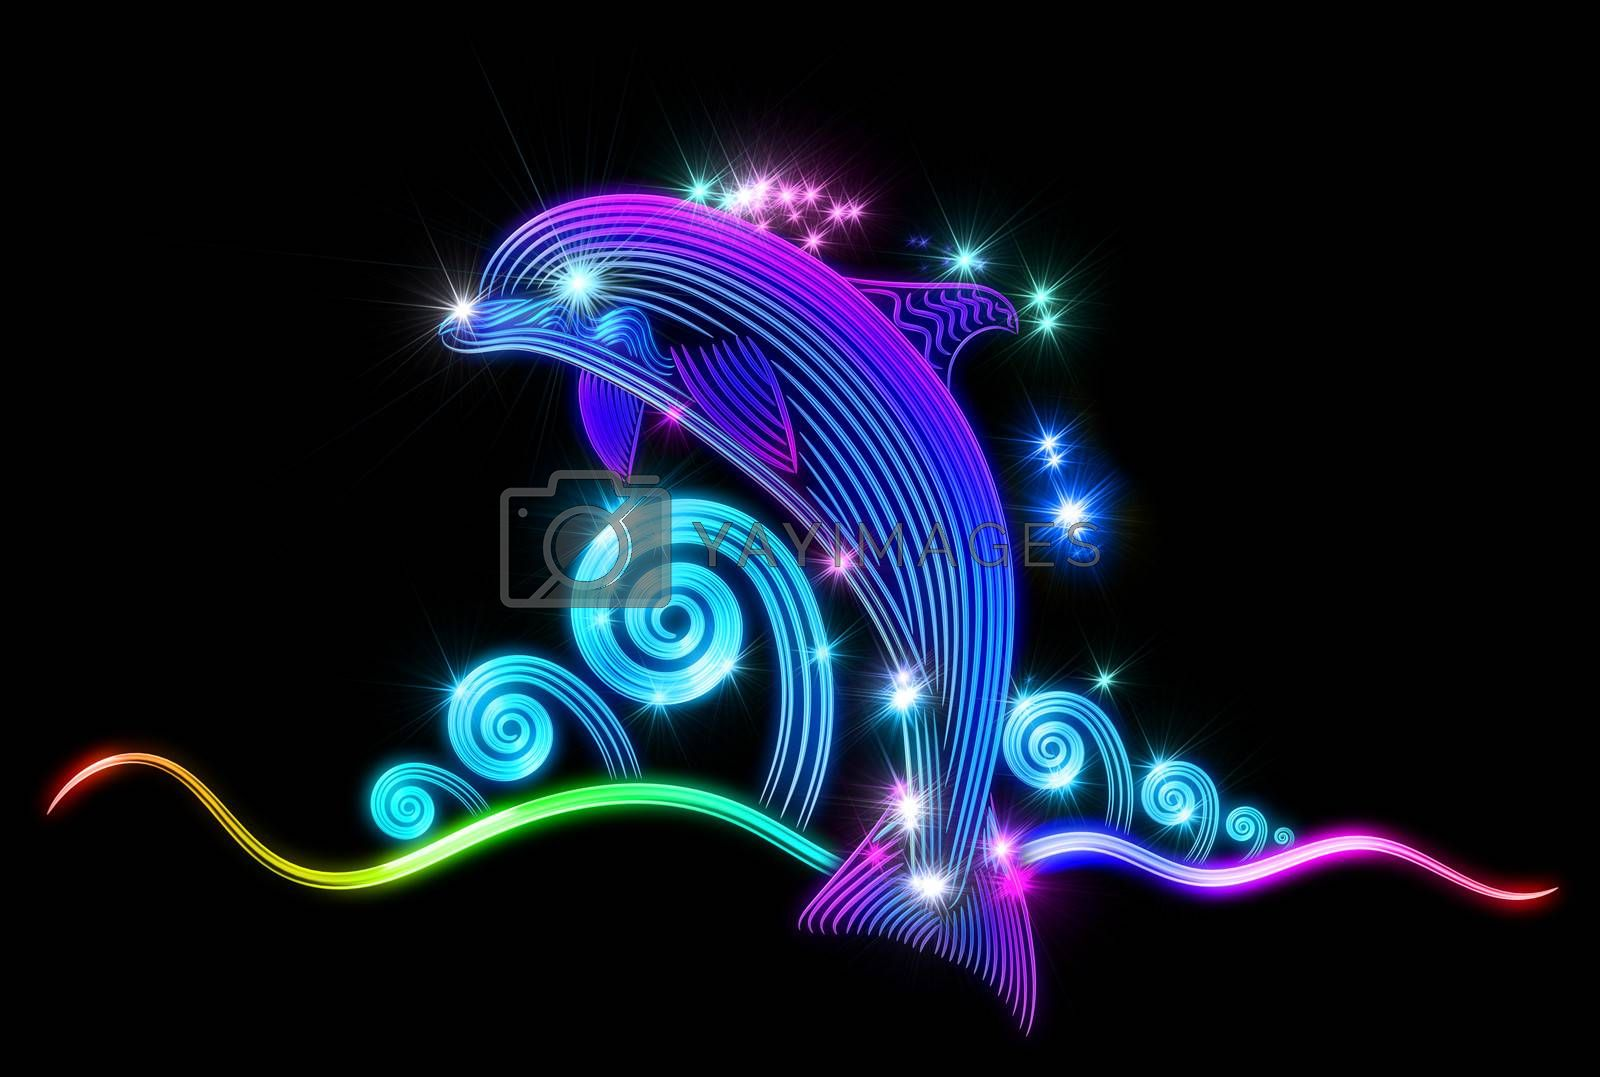 Beautiful swimming dolphin jumped from blue tropical ocean and slides on waves with bubbles and splashes of water. Water drops refract sunlight as a prism and visually similar to the shining stars.